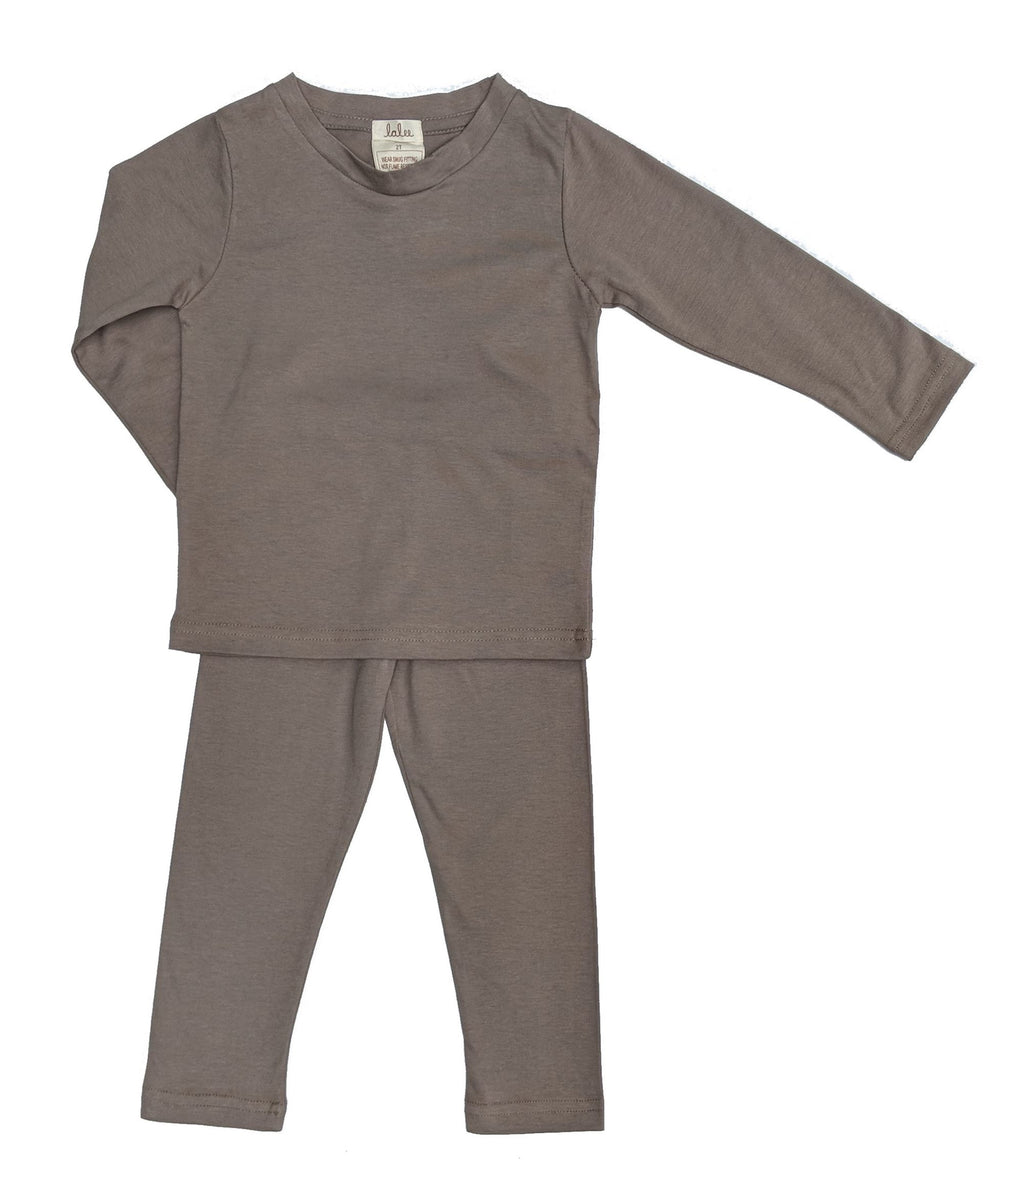 Organic Cotton Pajamas Set - Gray